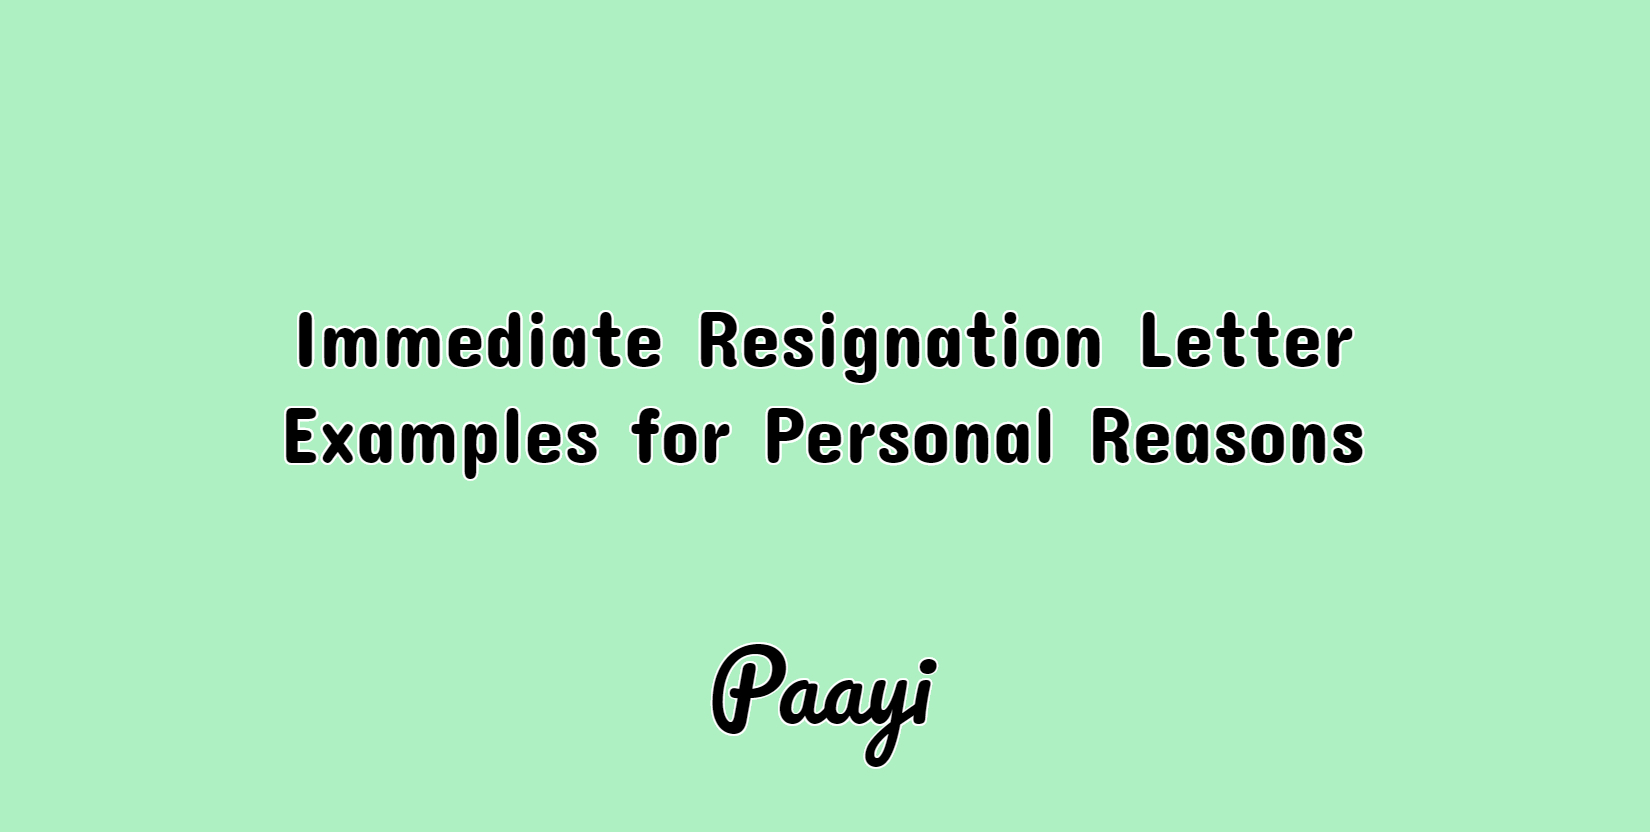 Immediate Resignation Letter Examples For Personal Reasons Paayi